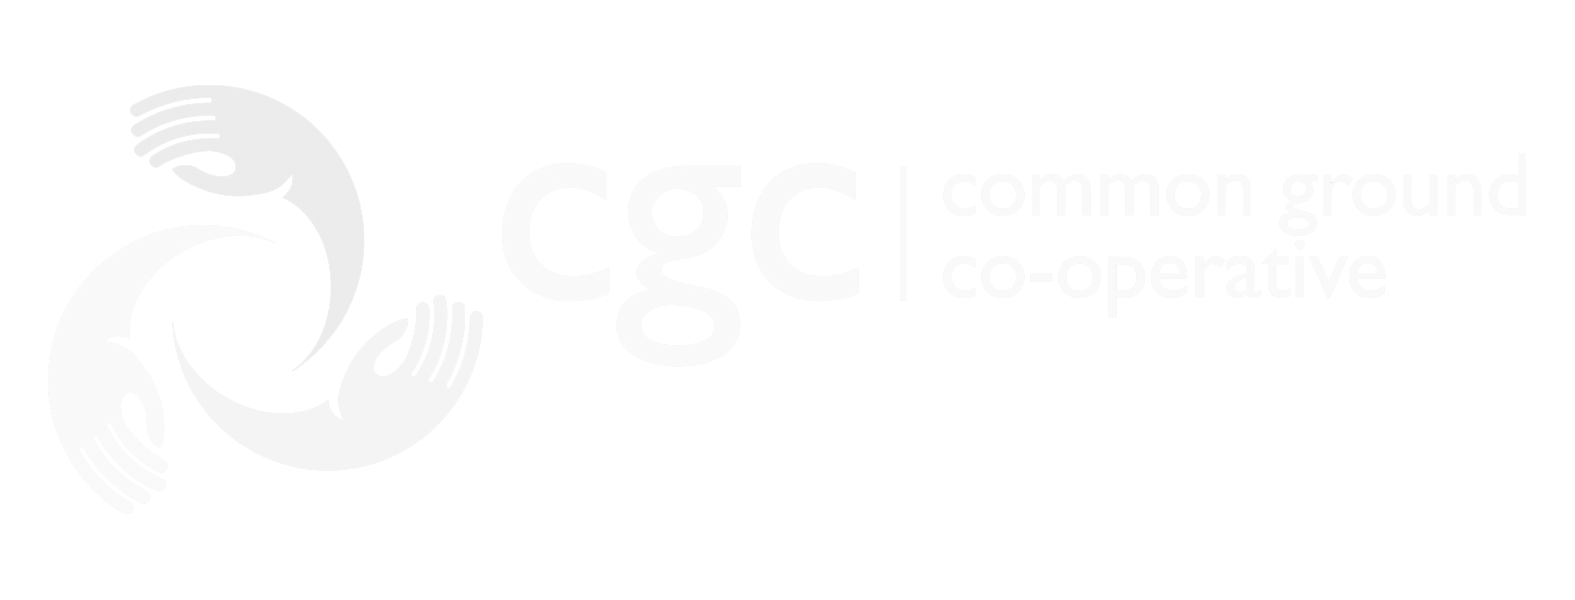 Final CGC Logo BW.png